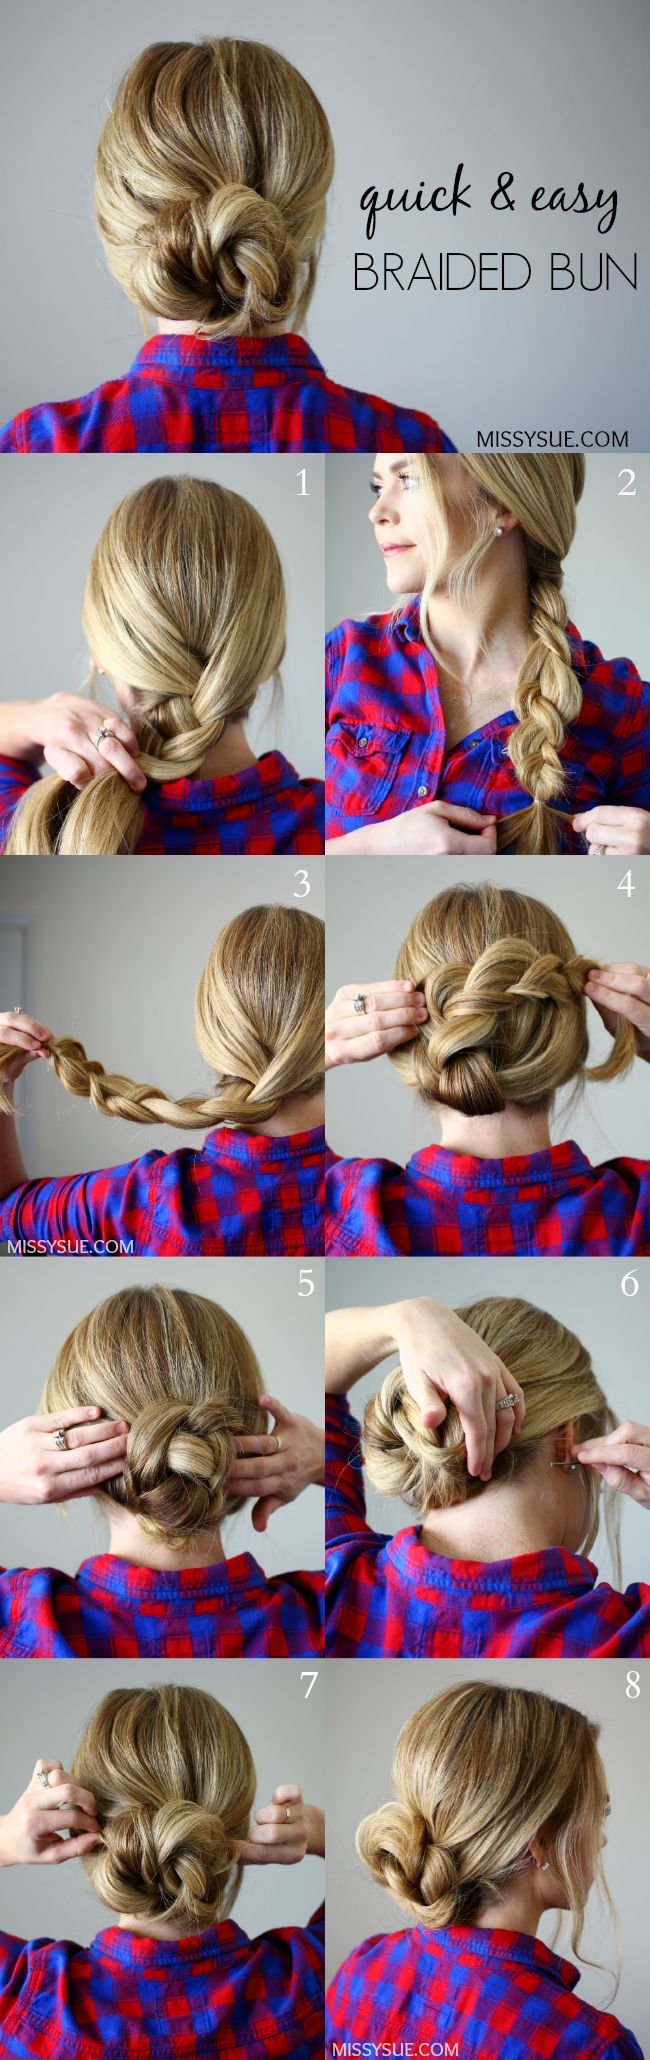 How To: Quick and Easy Braided Bun